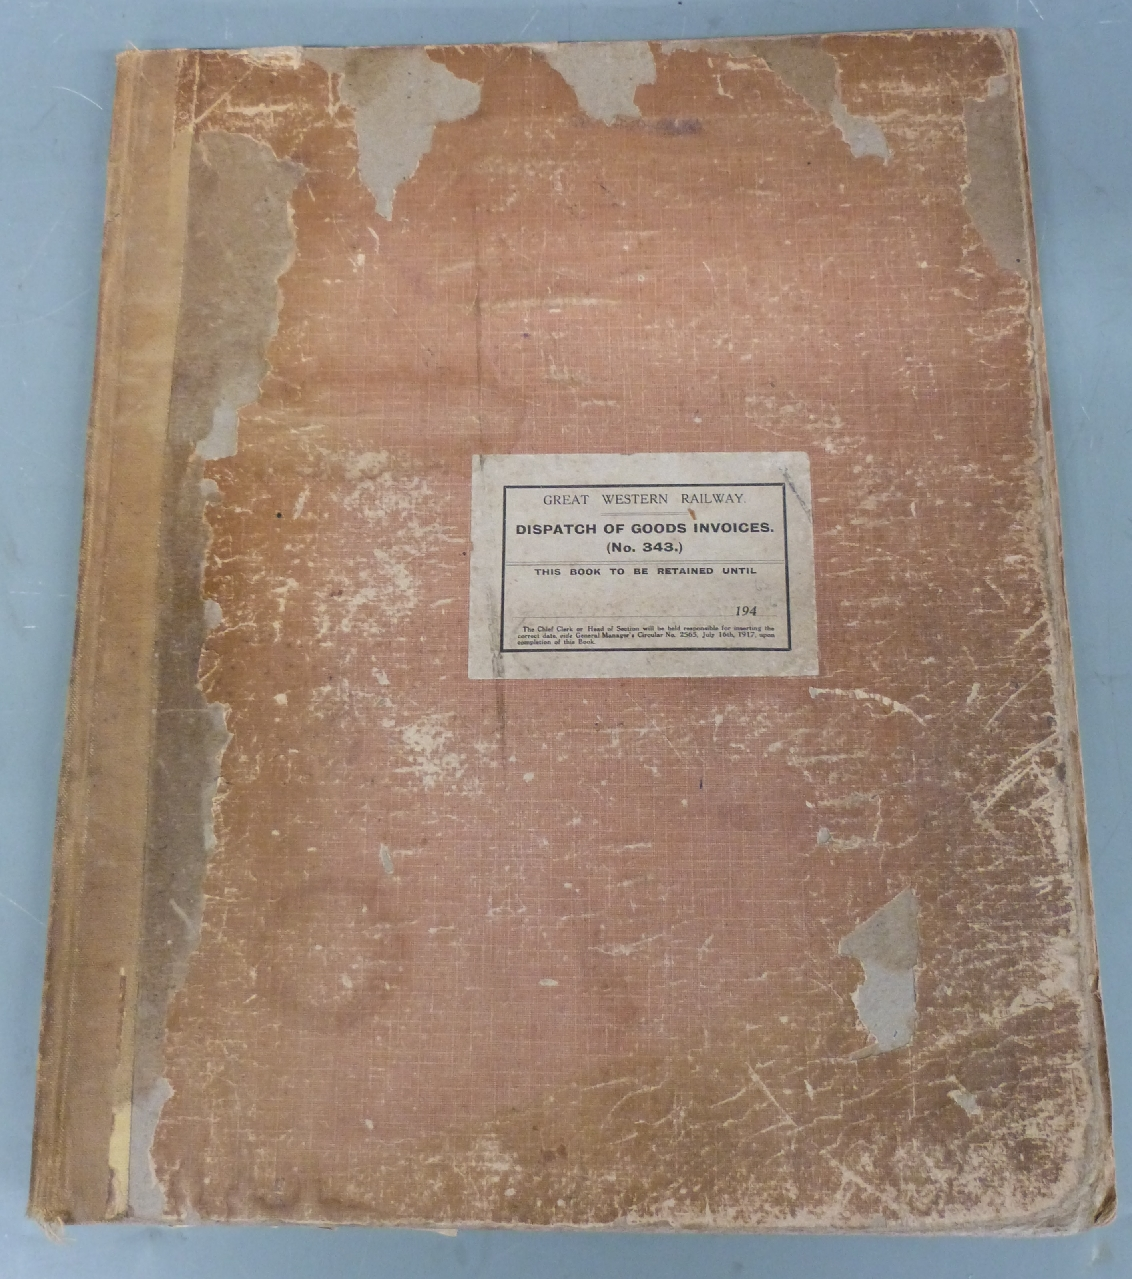 Lot 21 - Great Western Railway, Kings Heath Dispatch of Goods Invoices ledger, circa 1950